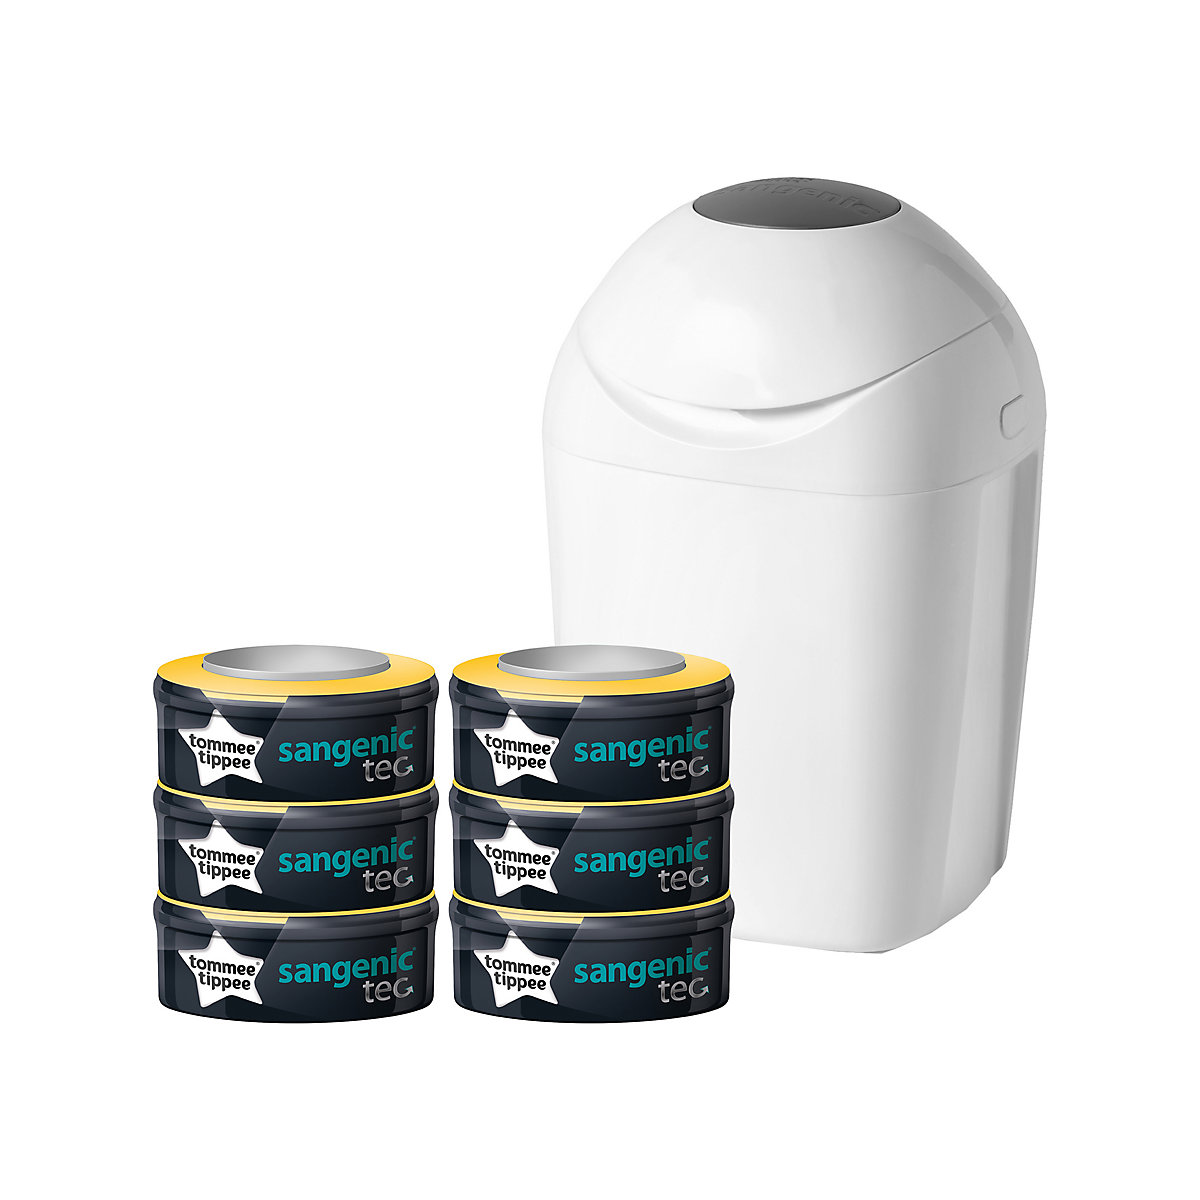 tommee tippee sangenic nappy disposal system find it for less. Black Bedroom Furniture Sets. Home Design Ideas